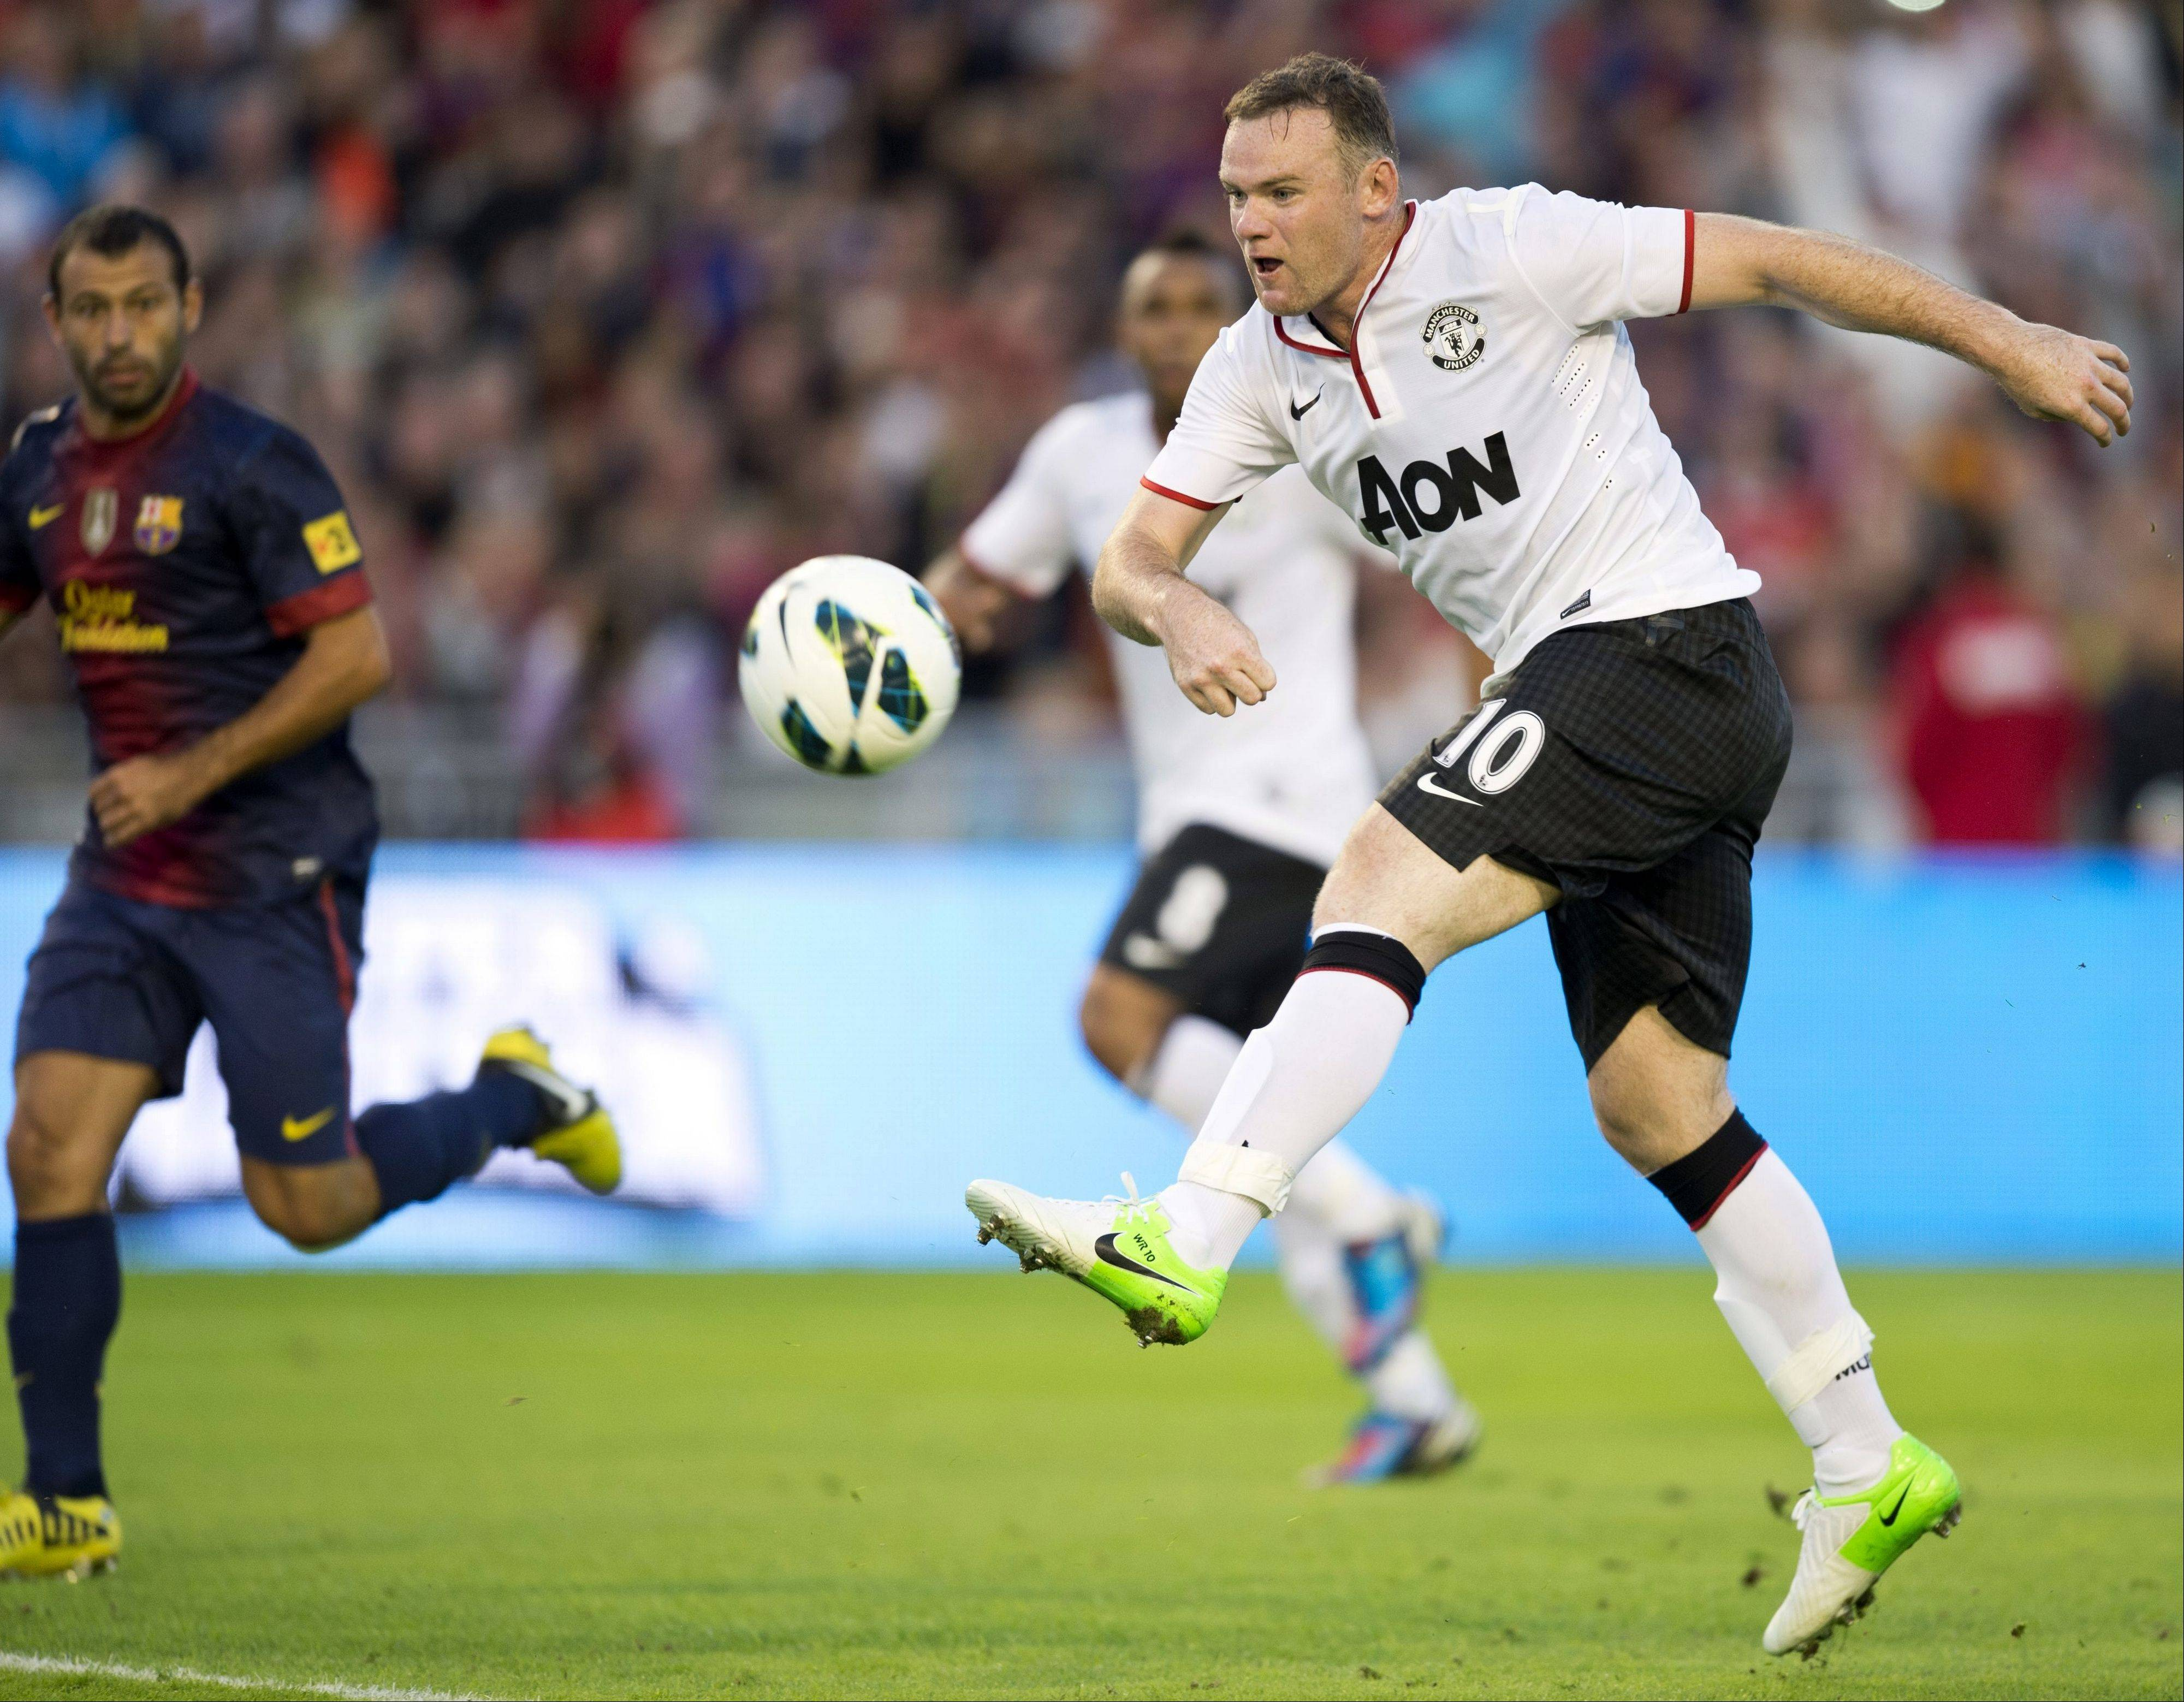 Manchester United's Wayne Rooney, right, kicks the ball as Barcelona's Javier Mascherano, left, defends, during a friendly soccer match in Goteborg, Sweden, Aug. 8. Manchester United is readying for its debut on the New York Stock Exchange on Friday.